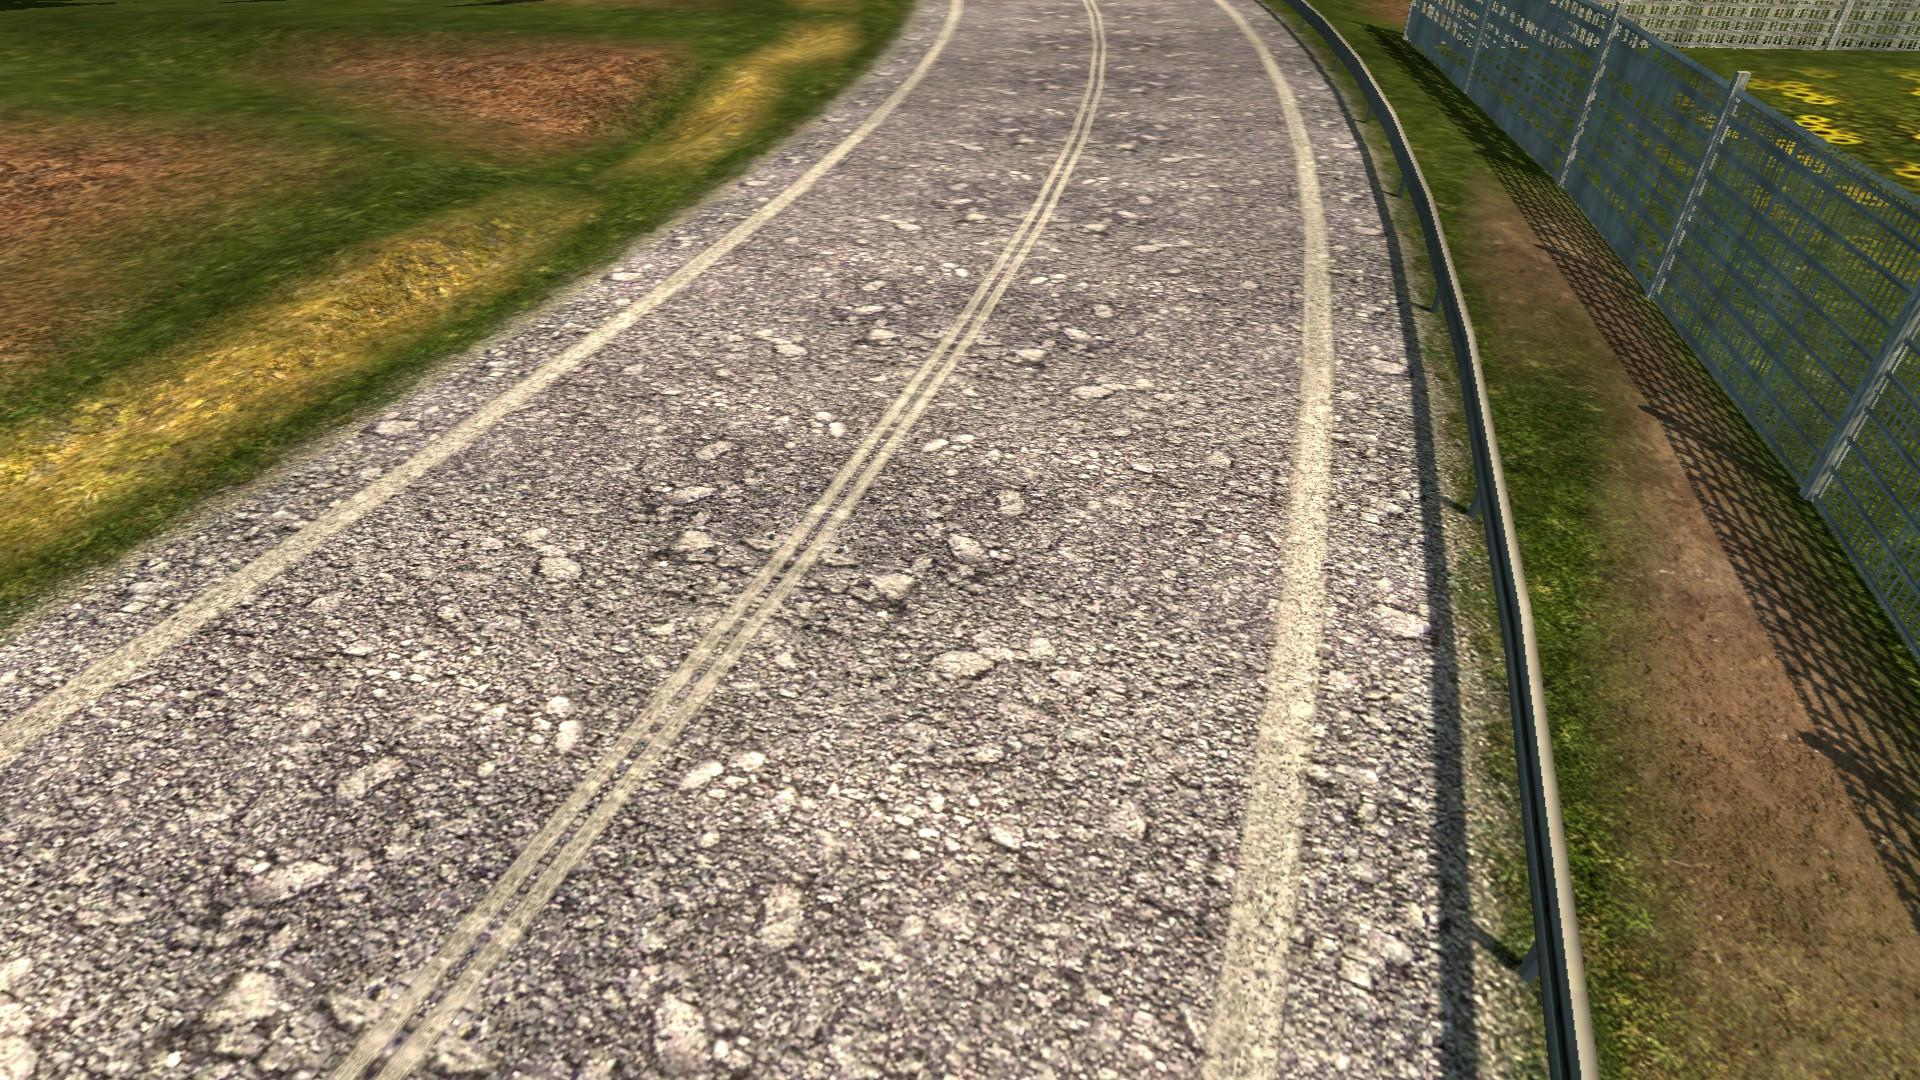 new-road-textures-1-21_3